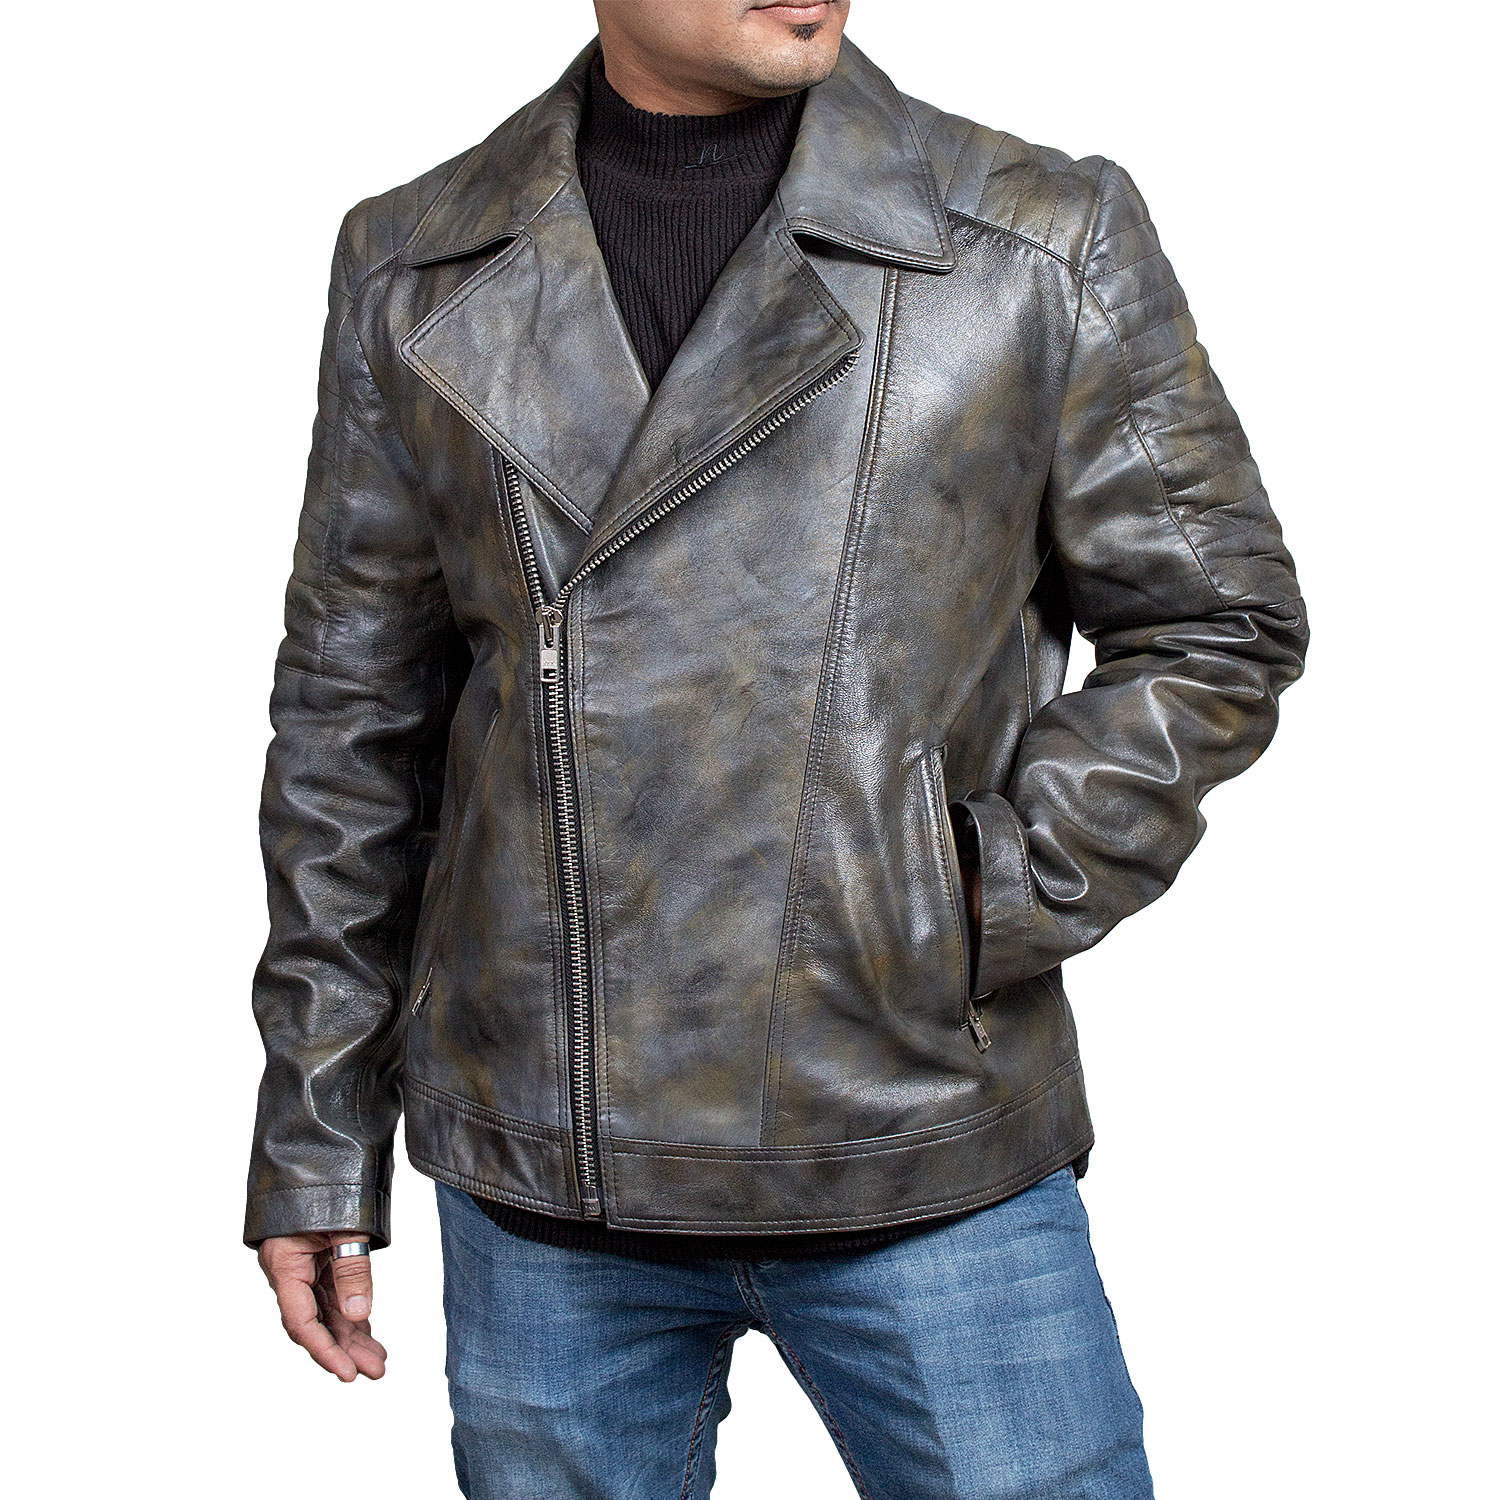 xtremejackets-brando-camouflage-biker-leather-jacket